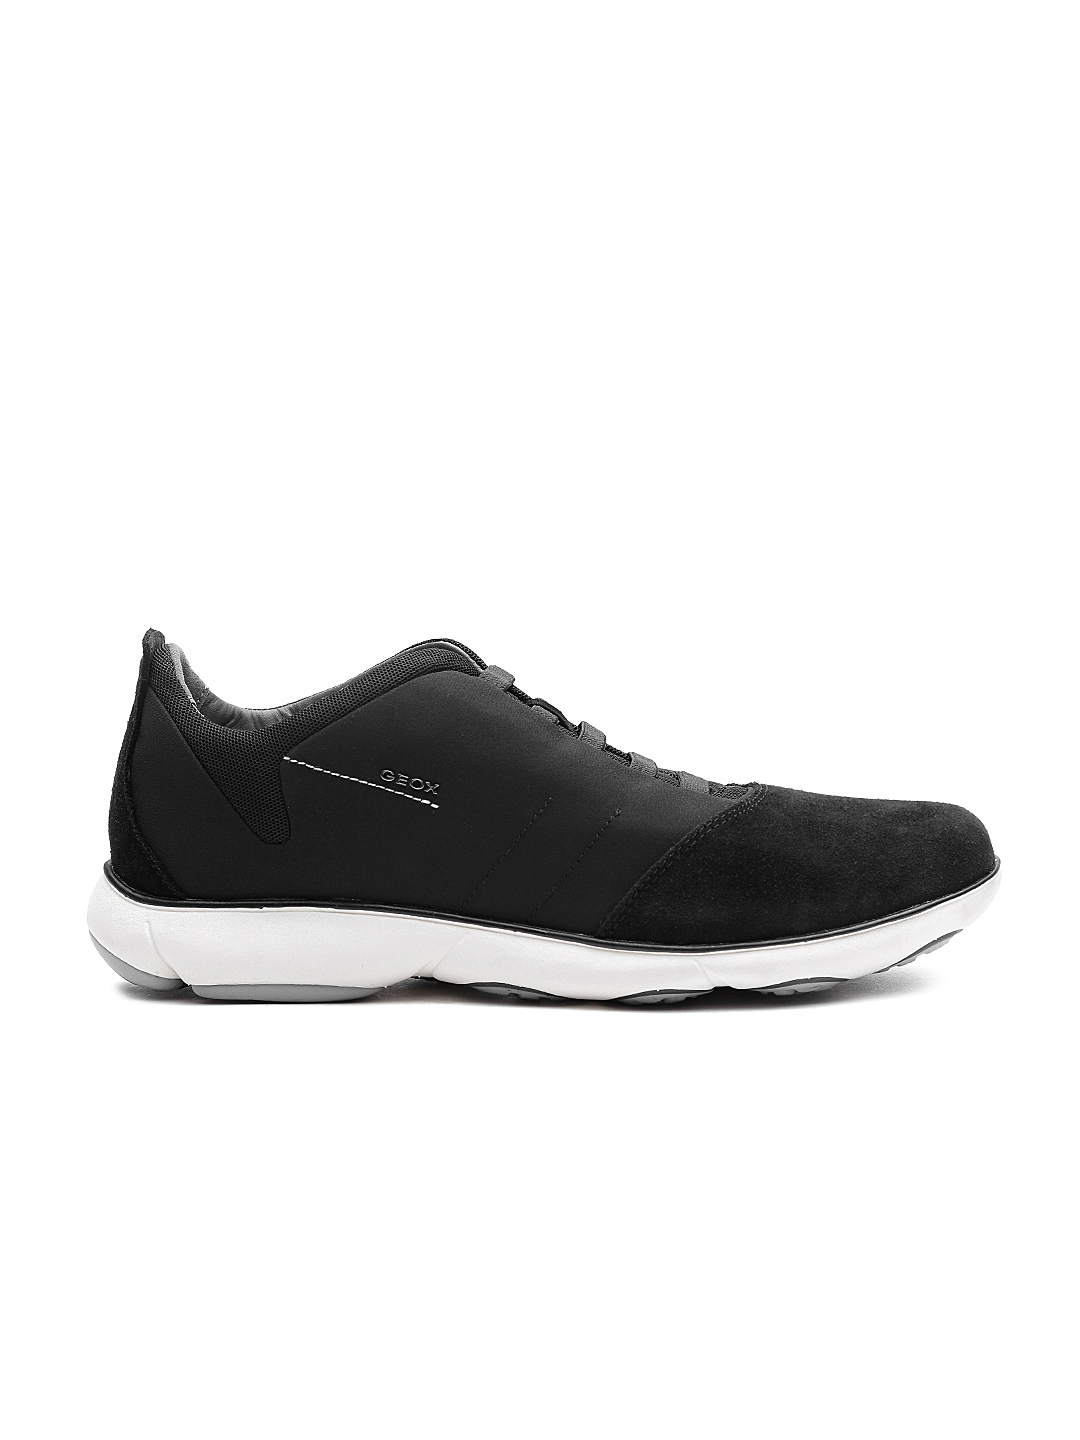 410fa802943 Buy GEOX Nebula Respira Men Black Casual Shoes - Casual Shoes for ...